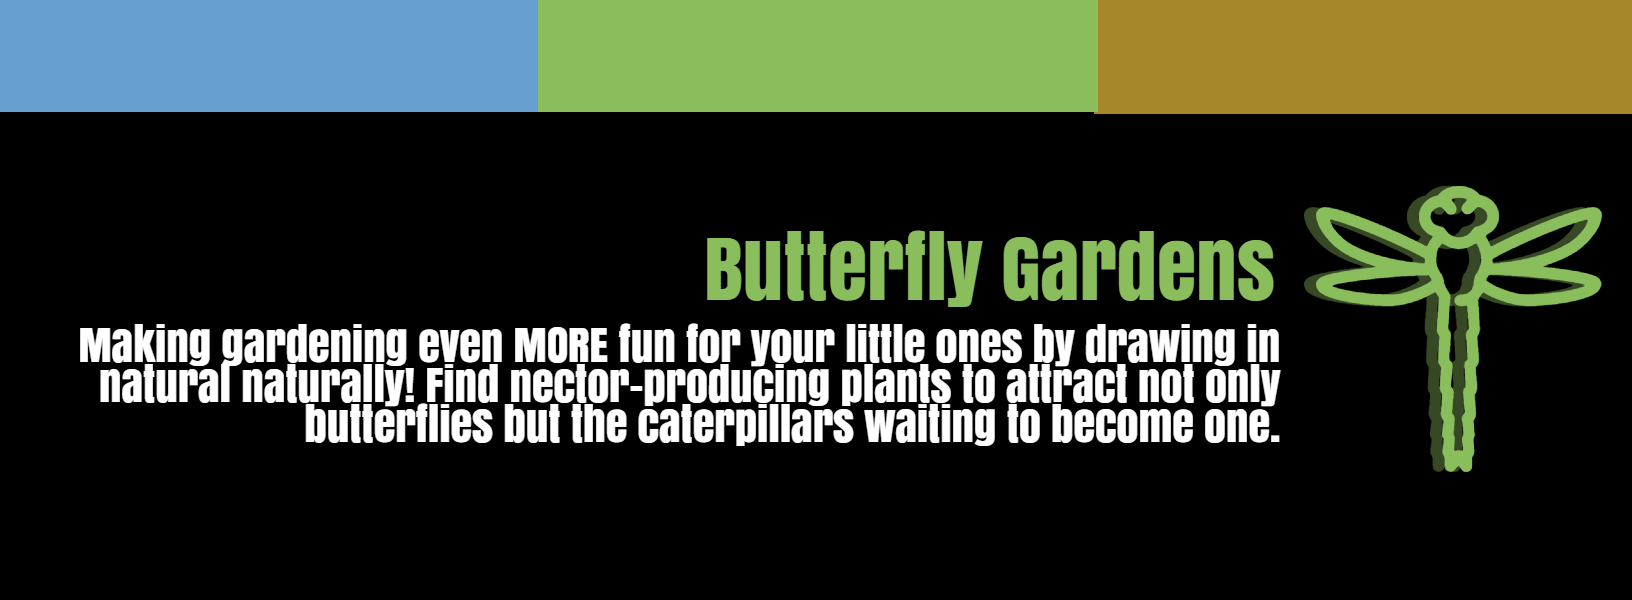 Butterfly Gardens For Gardening With Kids